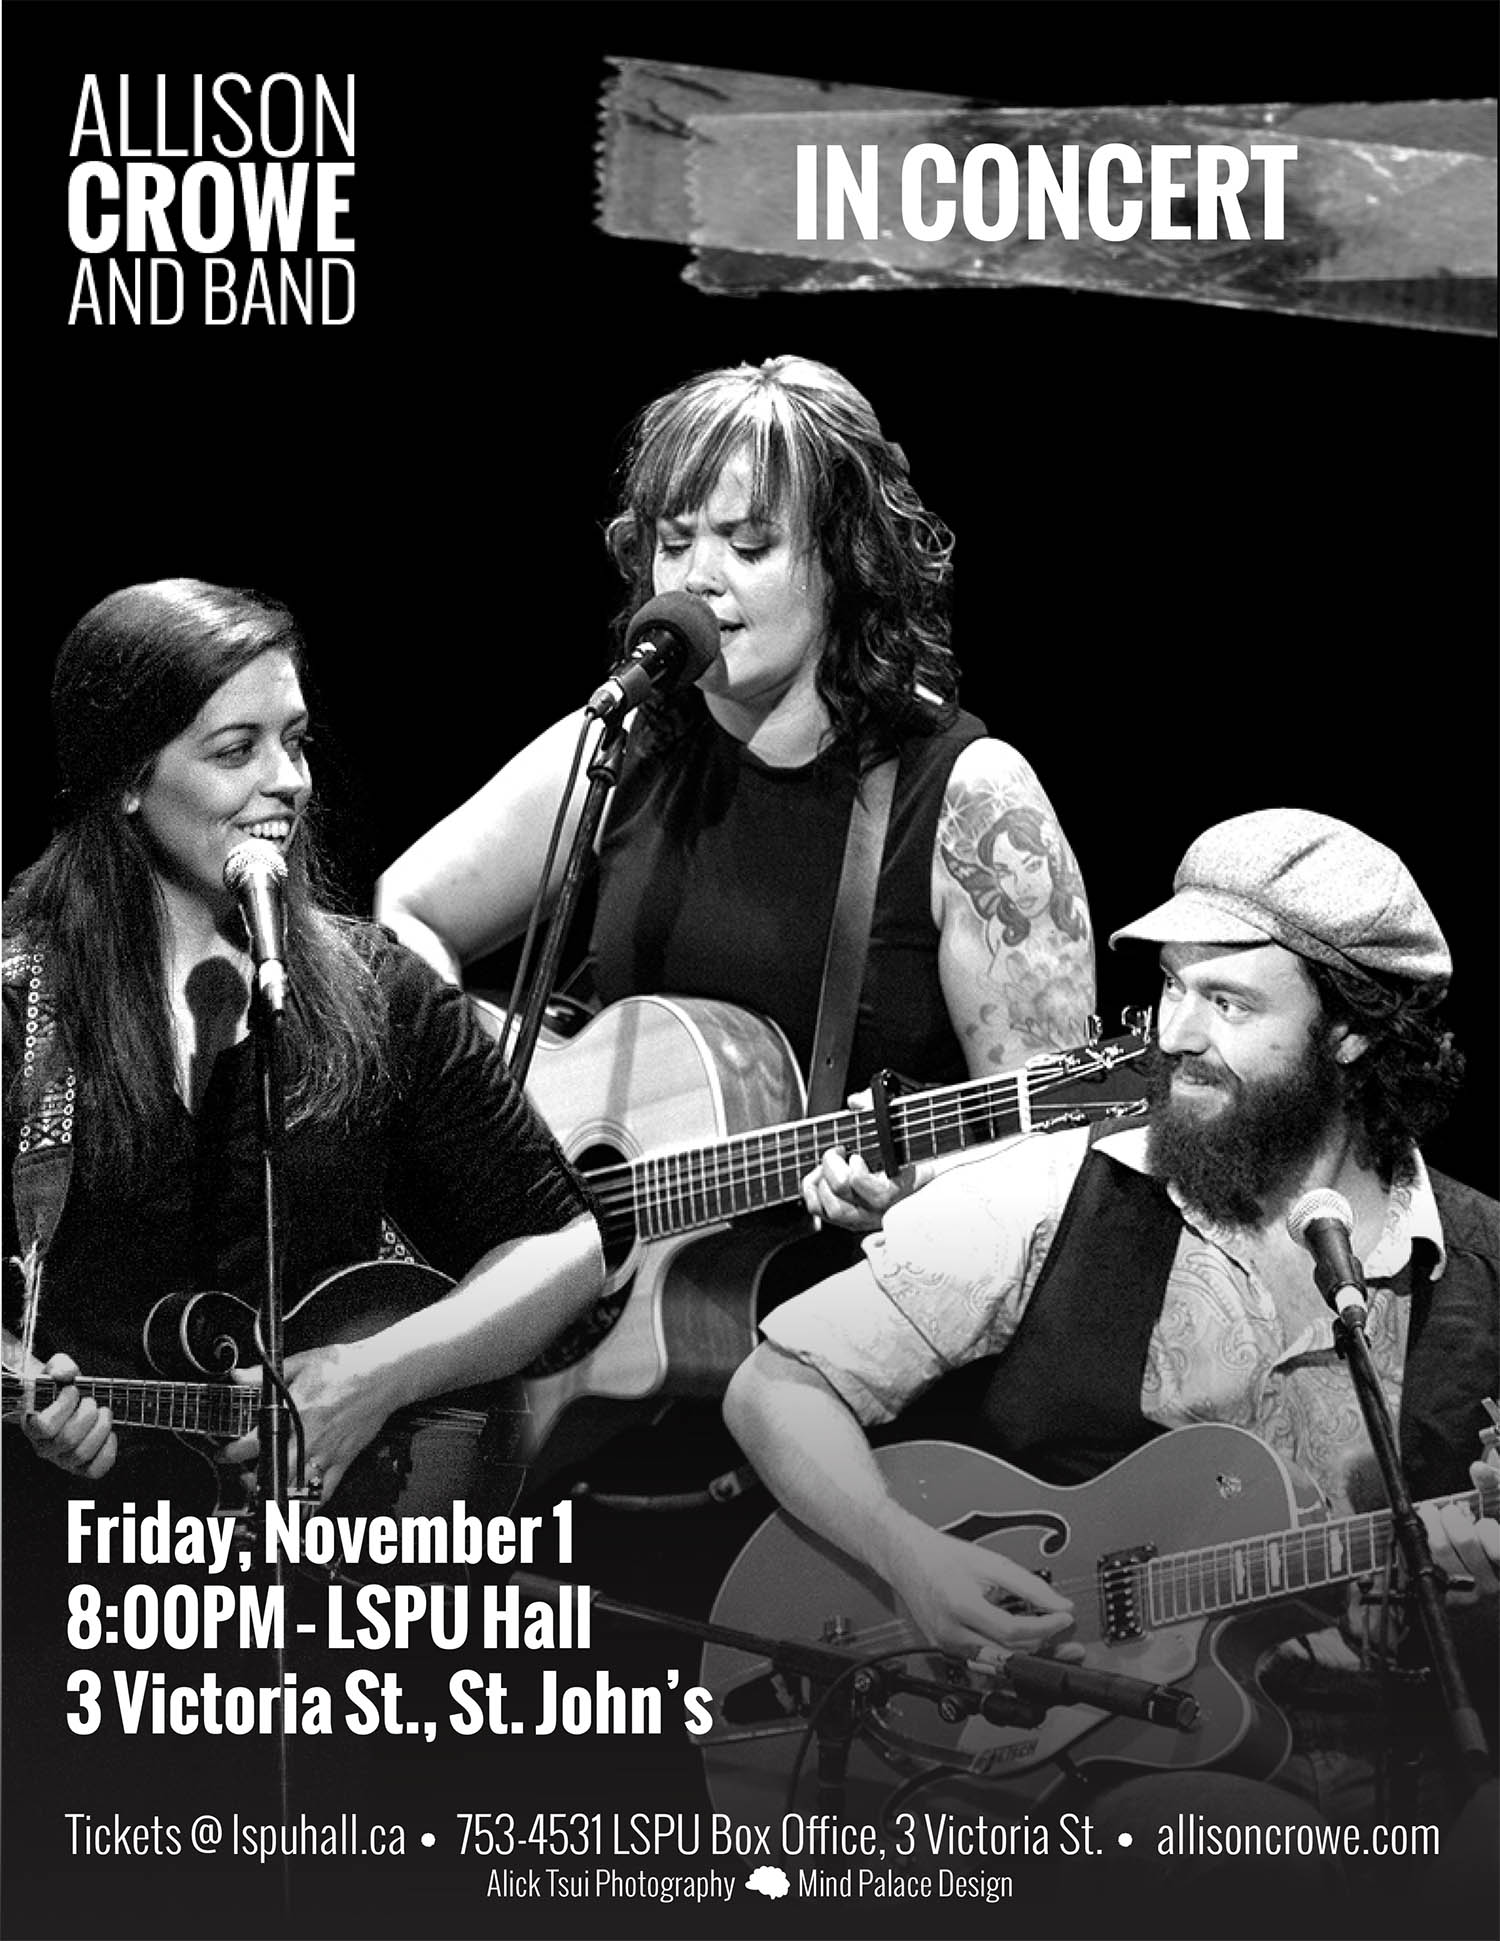 Poster for Allison Crowe and Band in Concert. Photo of the band performing live, three musicians on guitar. Two women, one man.